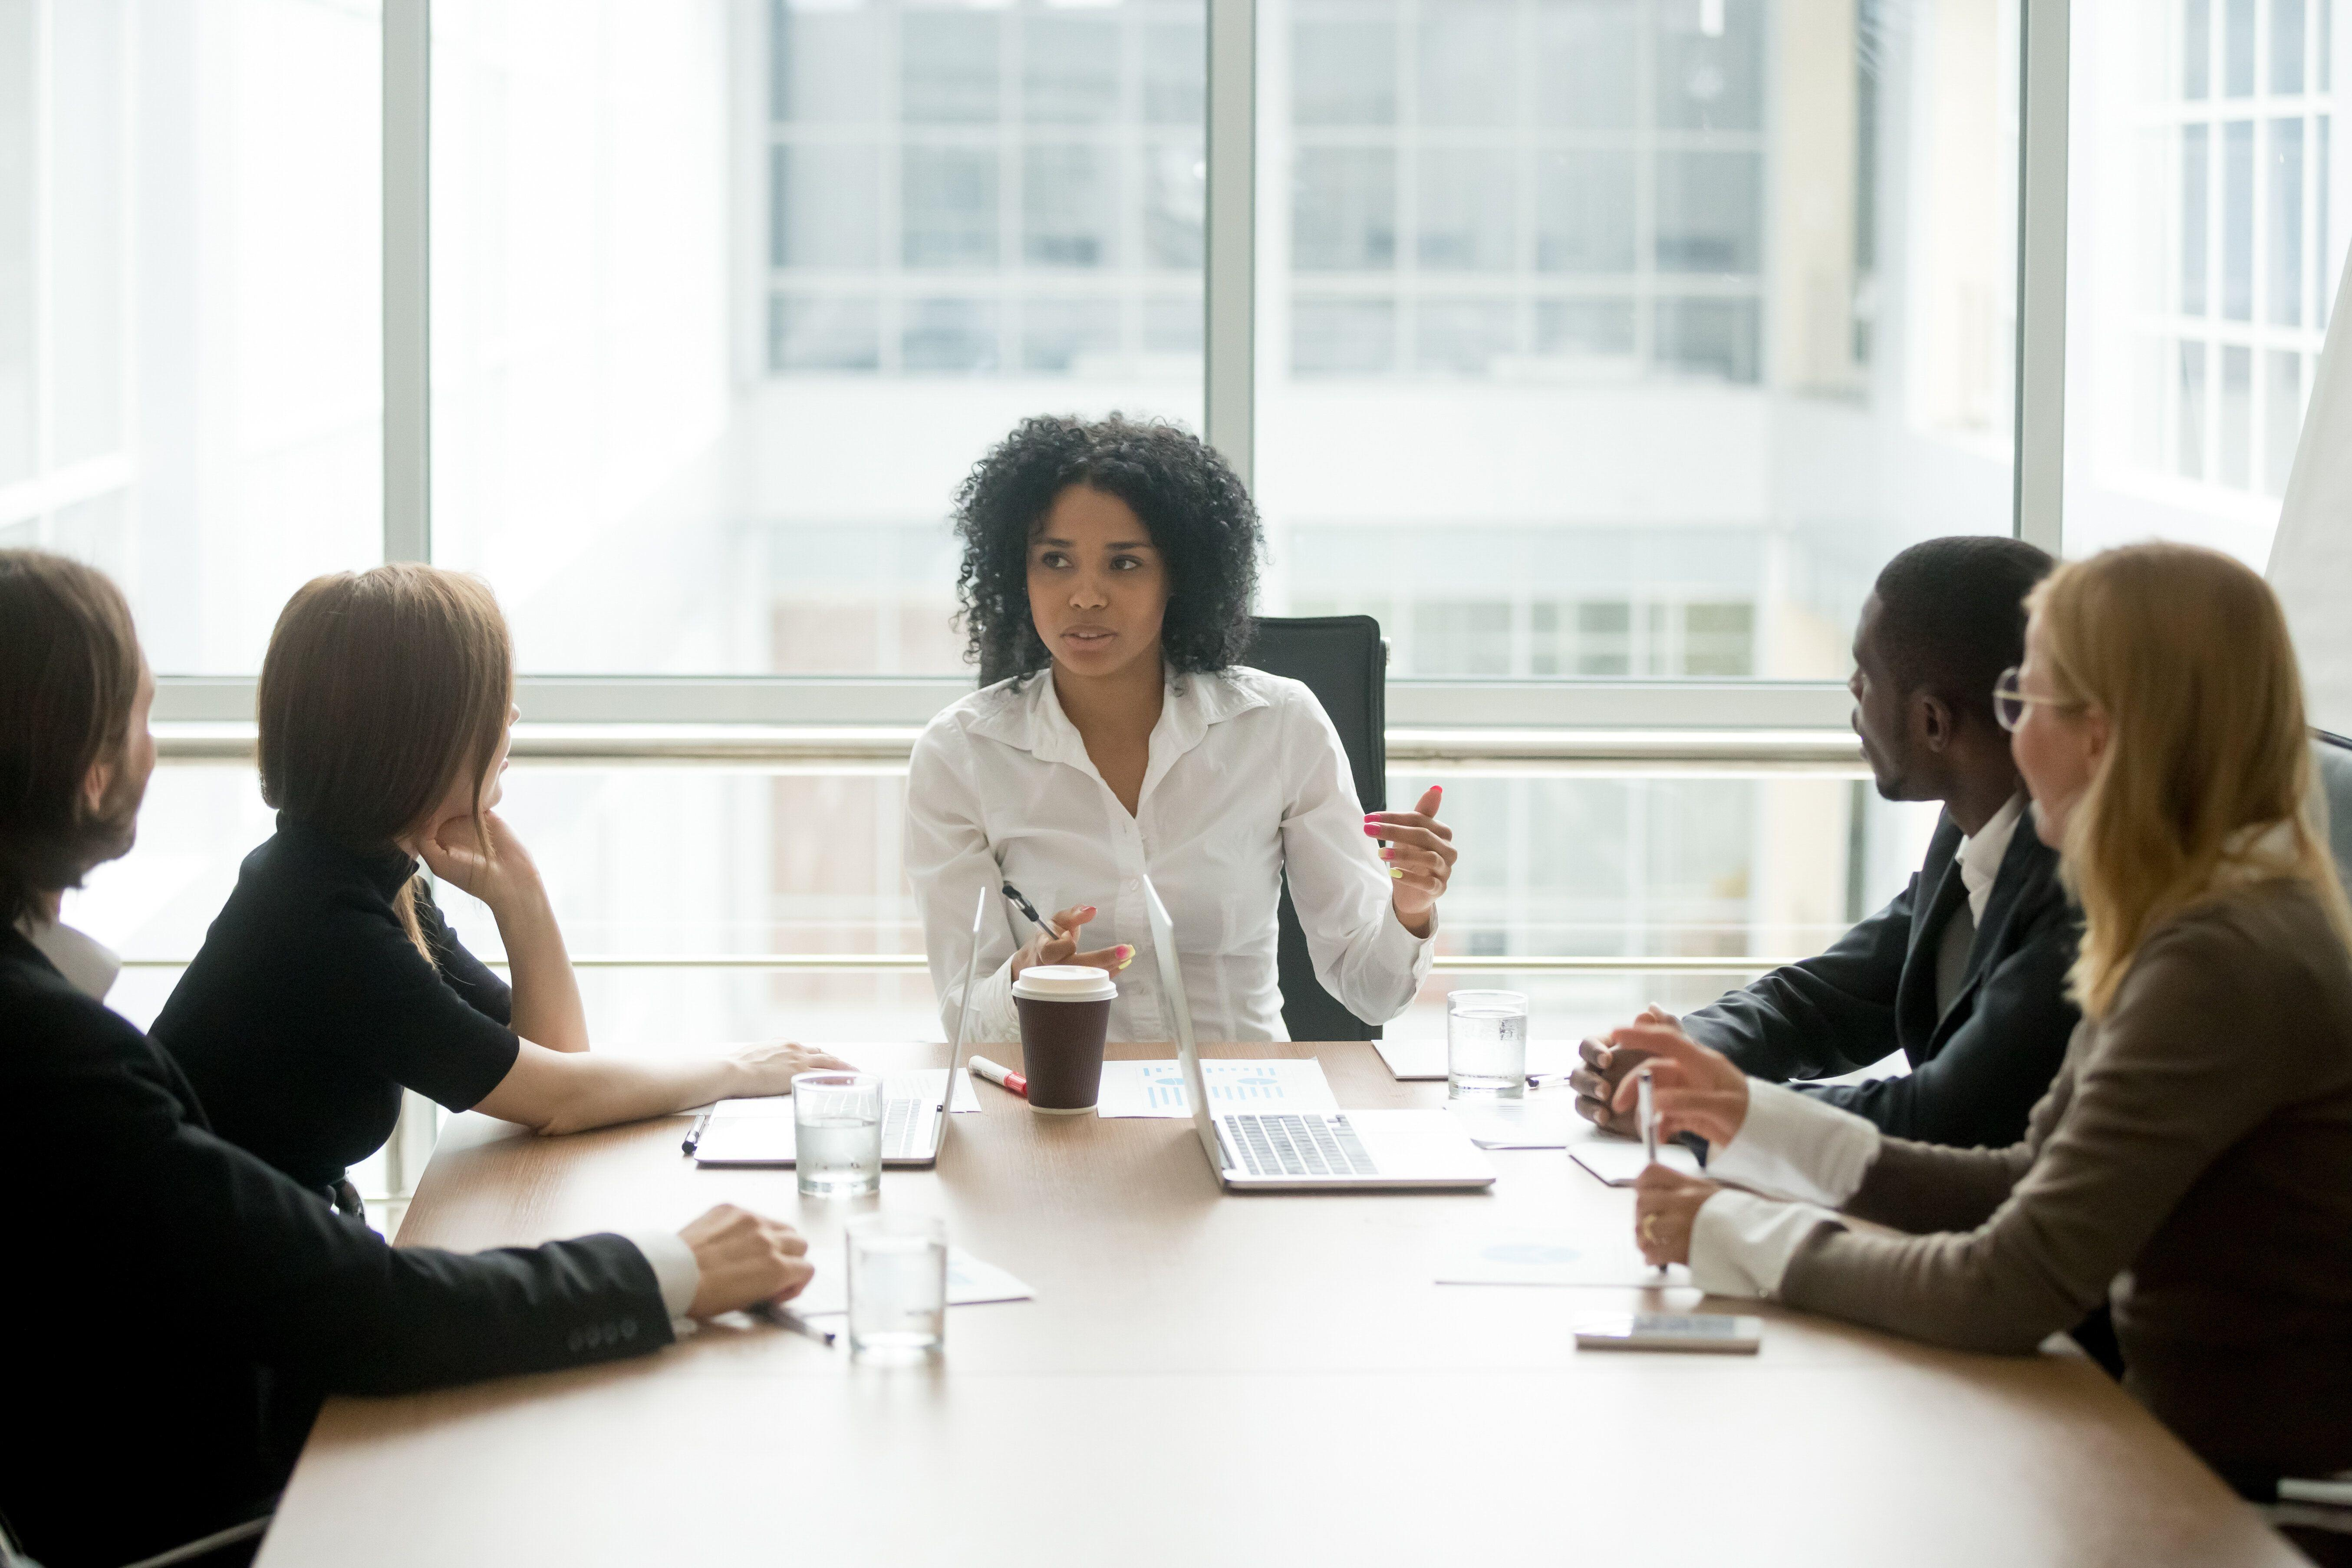 How to improve diversity when recruiting